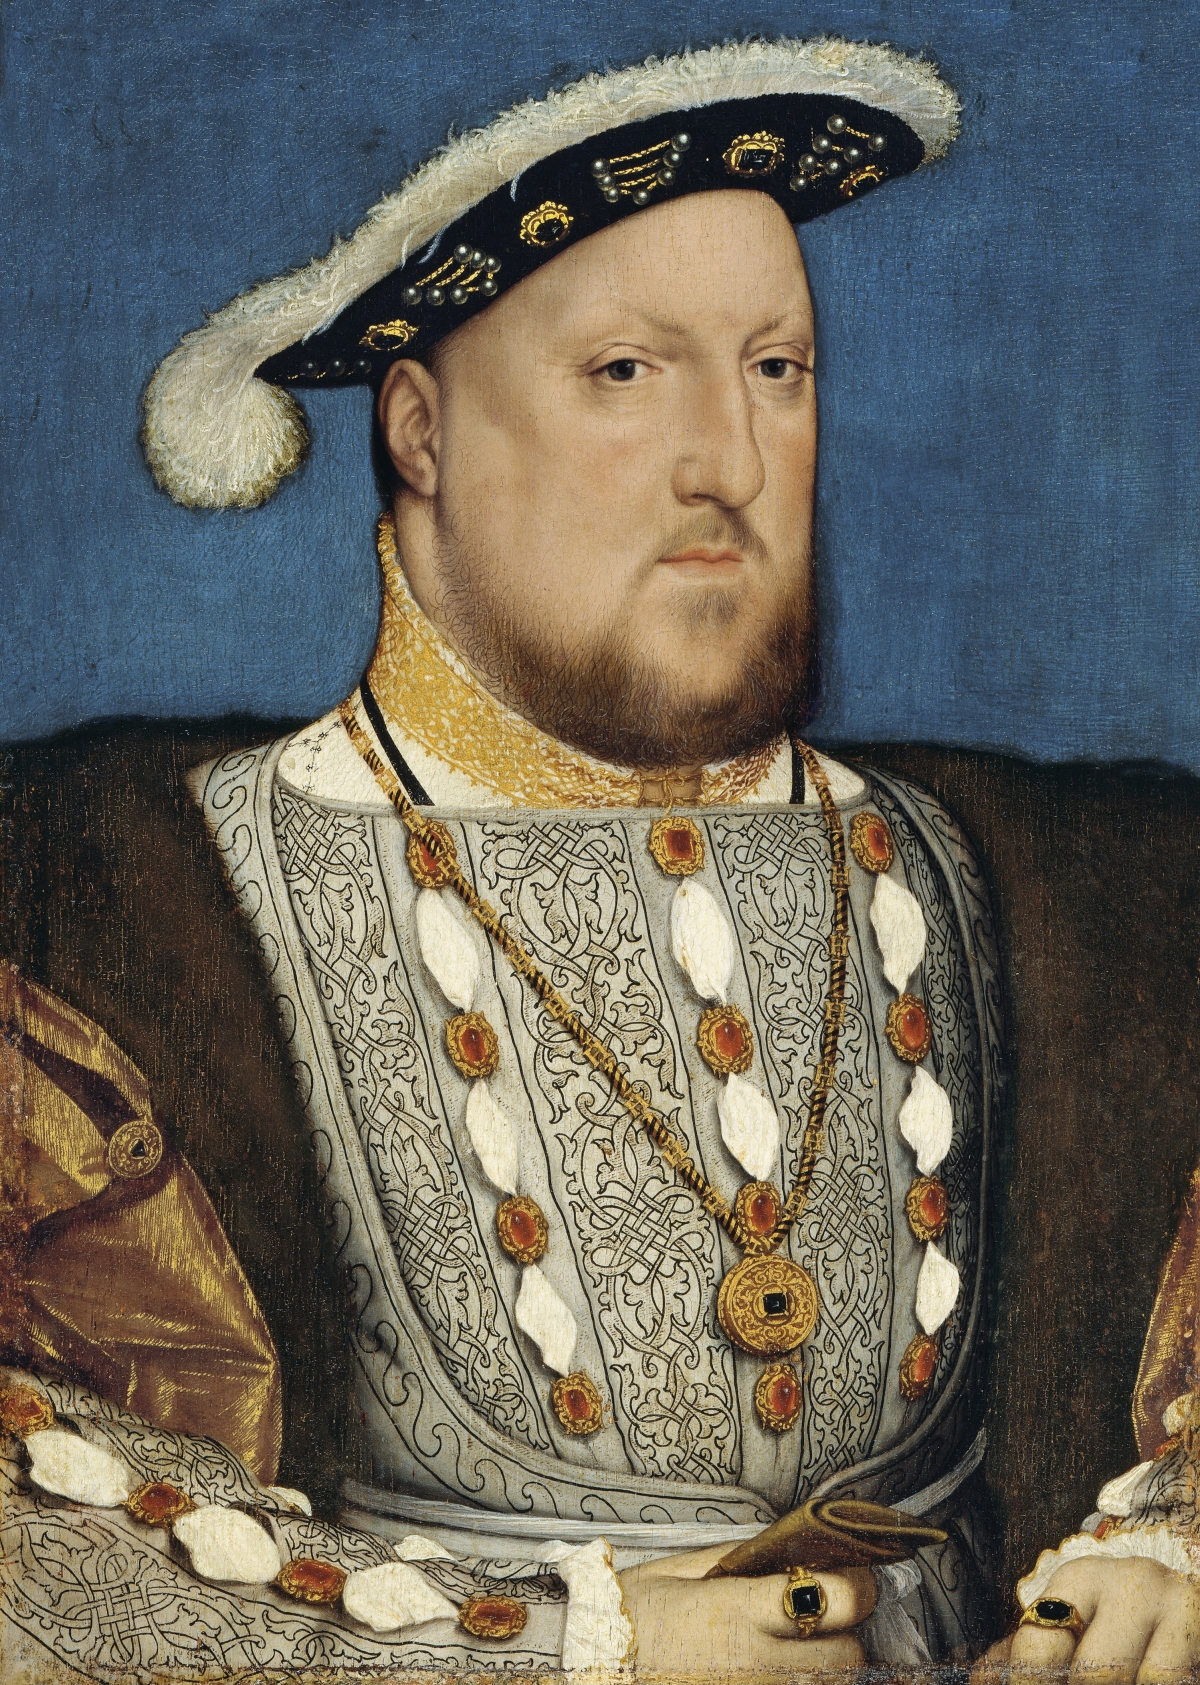 Hans Holbein, the Younger, Around 1497-1543 - Portrait of Henry VIII of England (Thyssen-Bornemisza Museum)